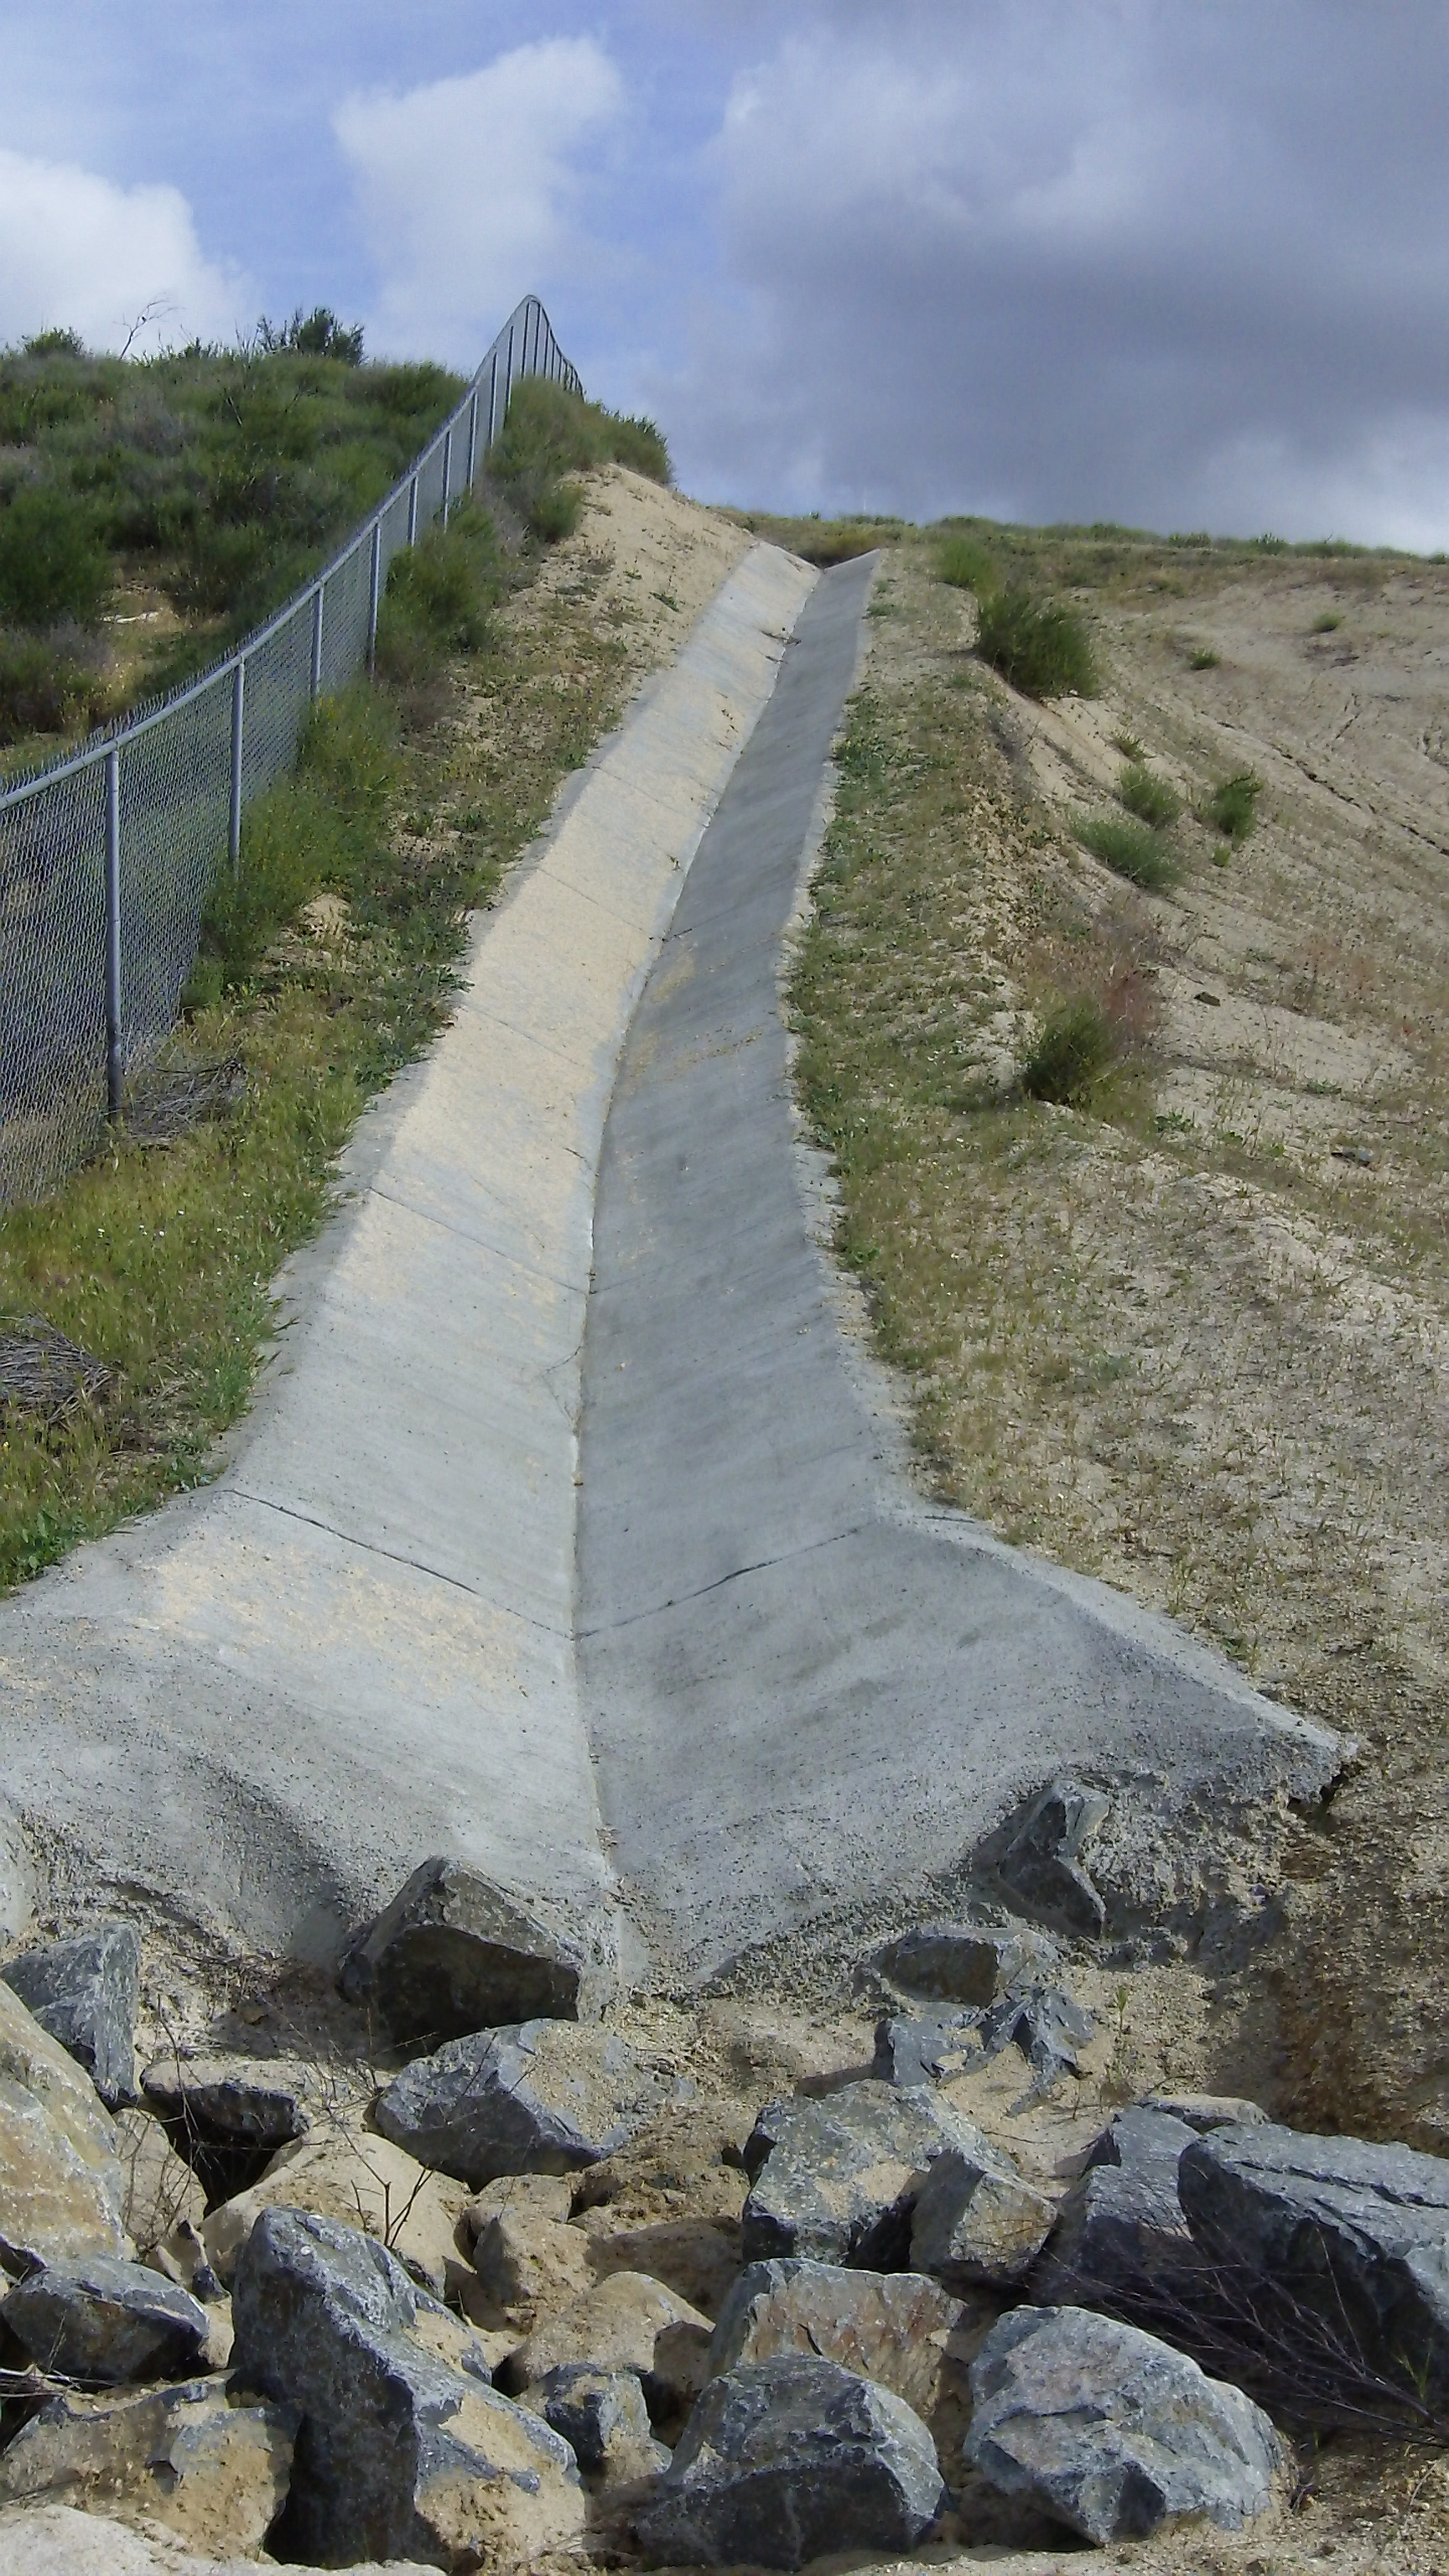 Precision Set-Up has successfully completed hundreds of v-ditch projects in the Riverside and San Diego areas